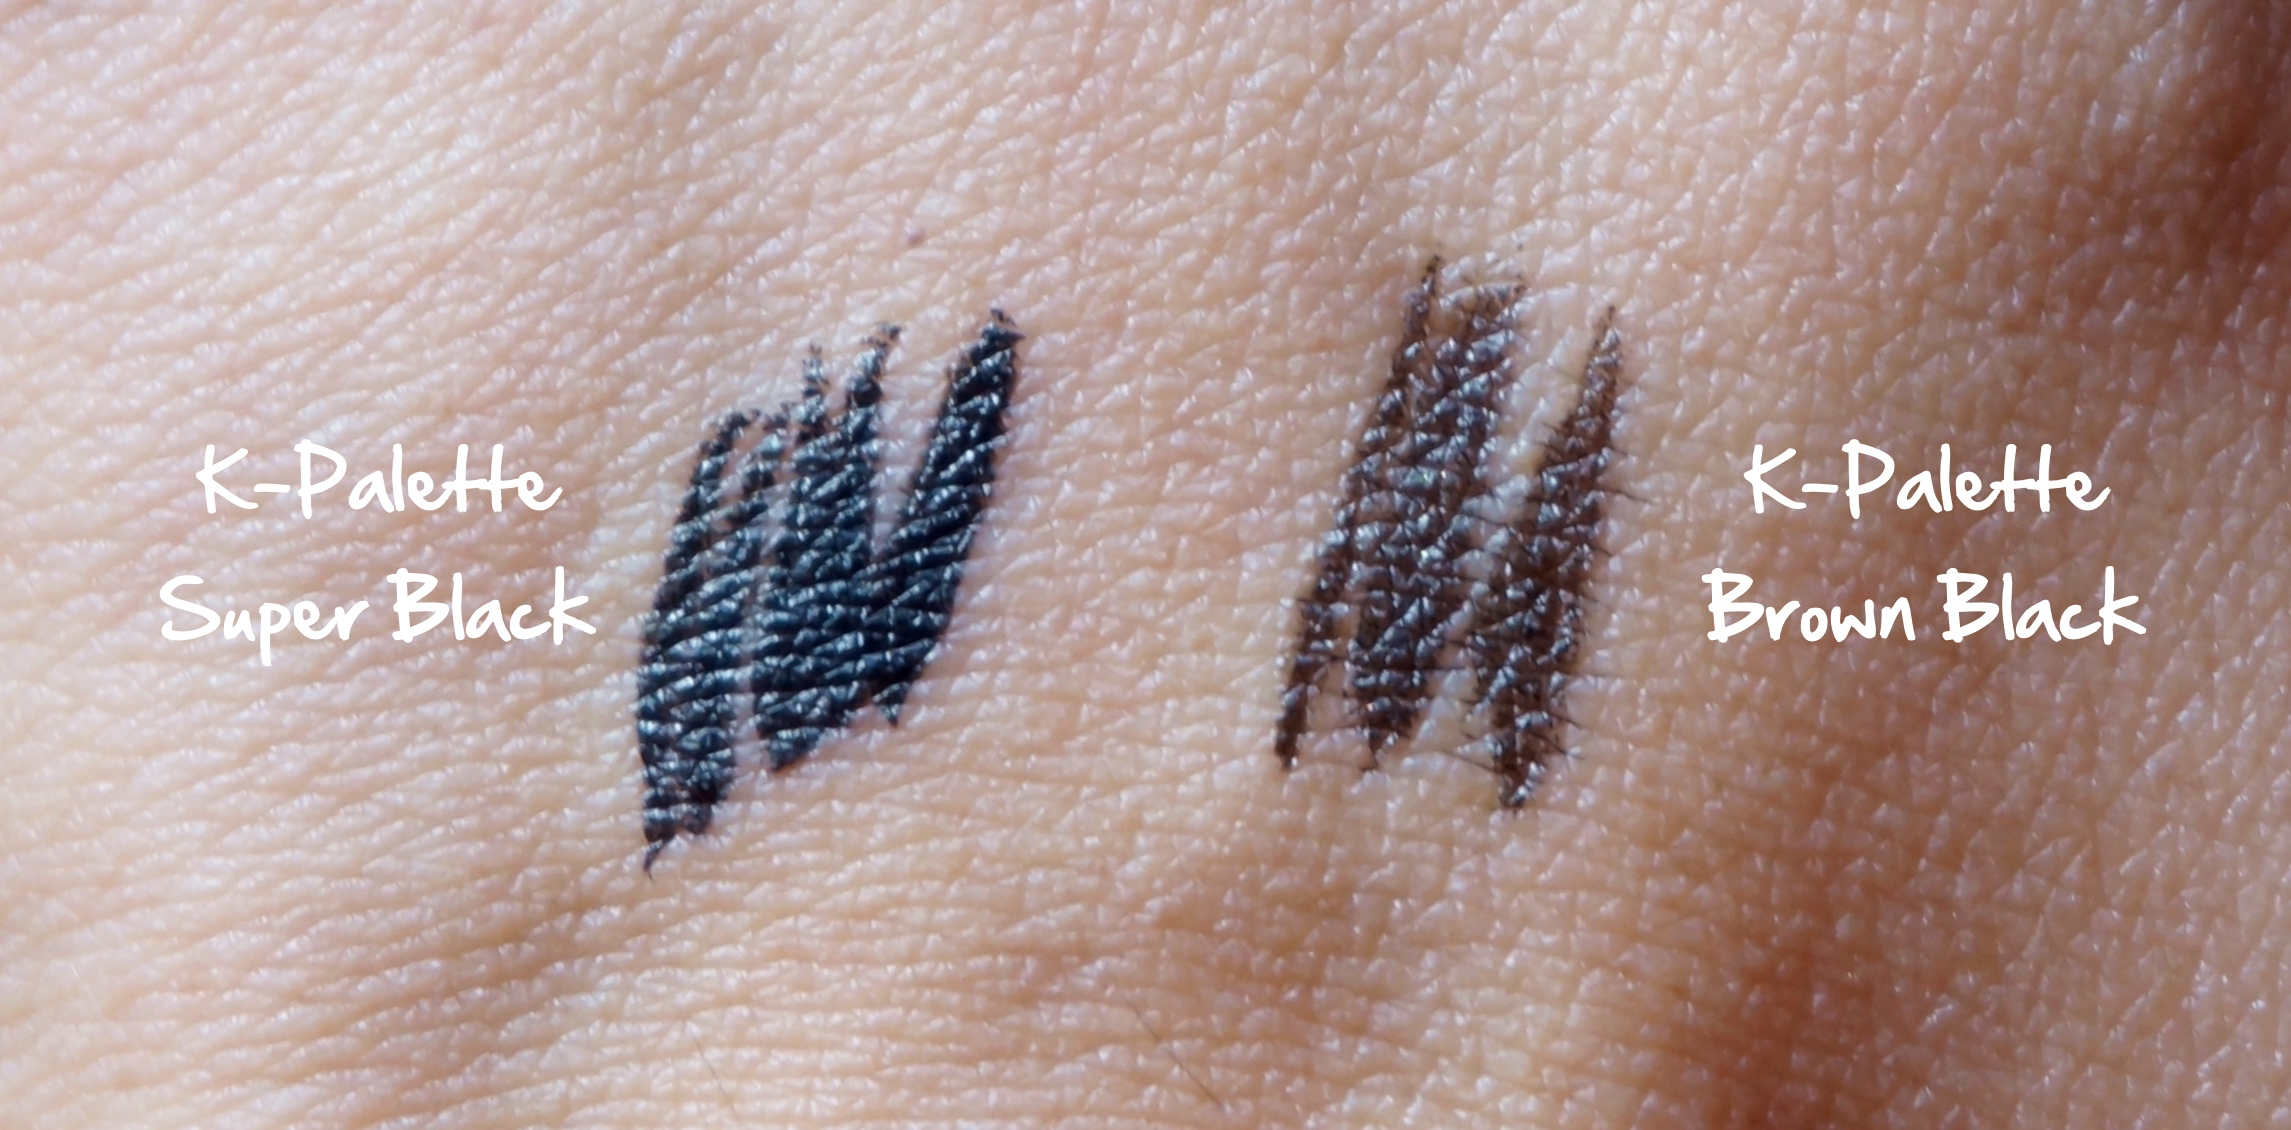 Comparison swatch: the K-Palette Super Black vs the Brown Black. There is a big difference when they're worn.